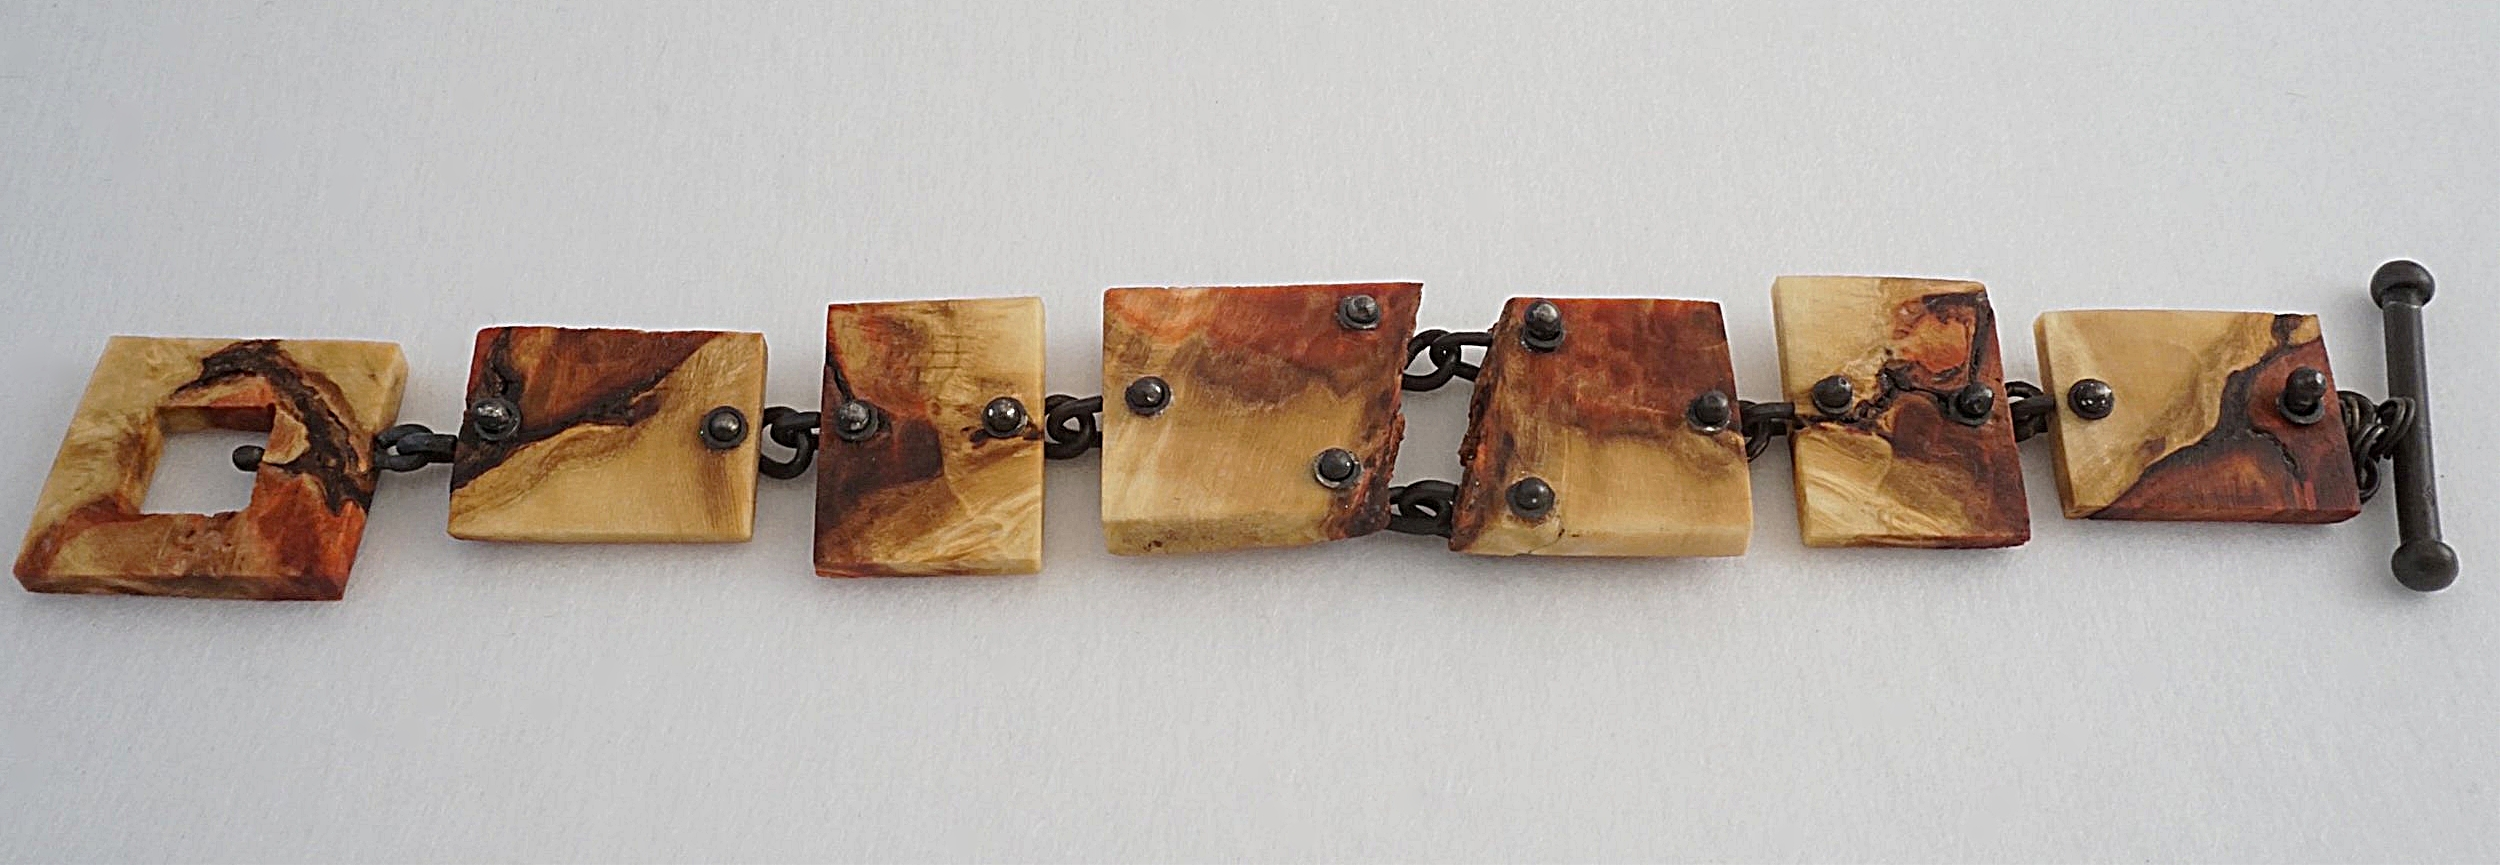 Hand carved box elder burl wood links with blackened sterling silver links and toggle